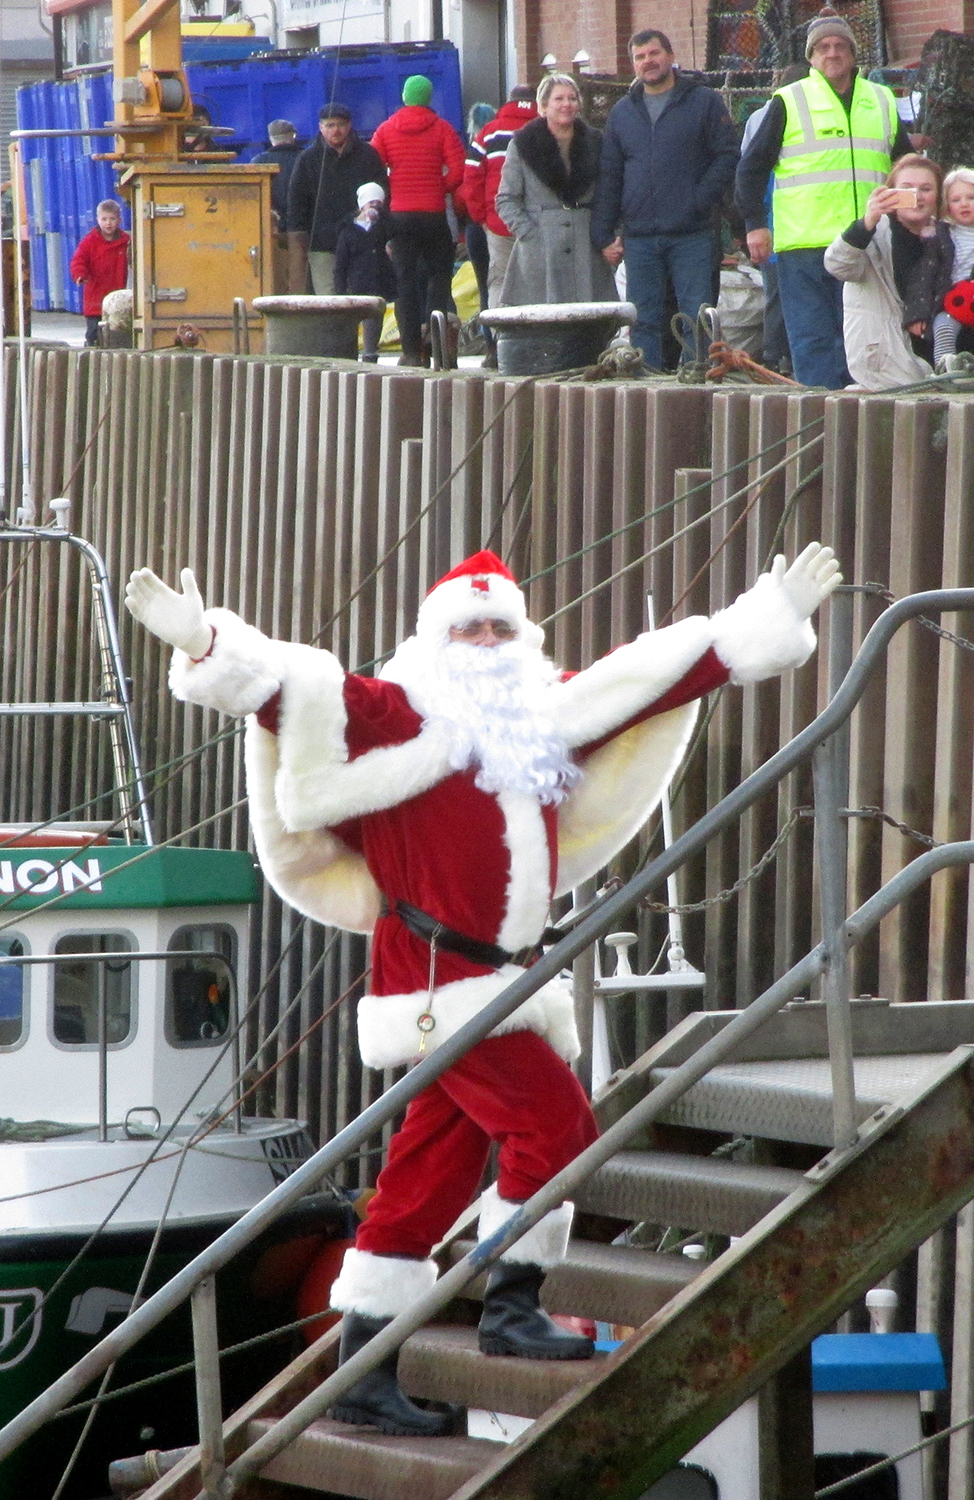 Santa climbs the steps from the boat to the pier